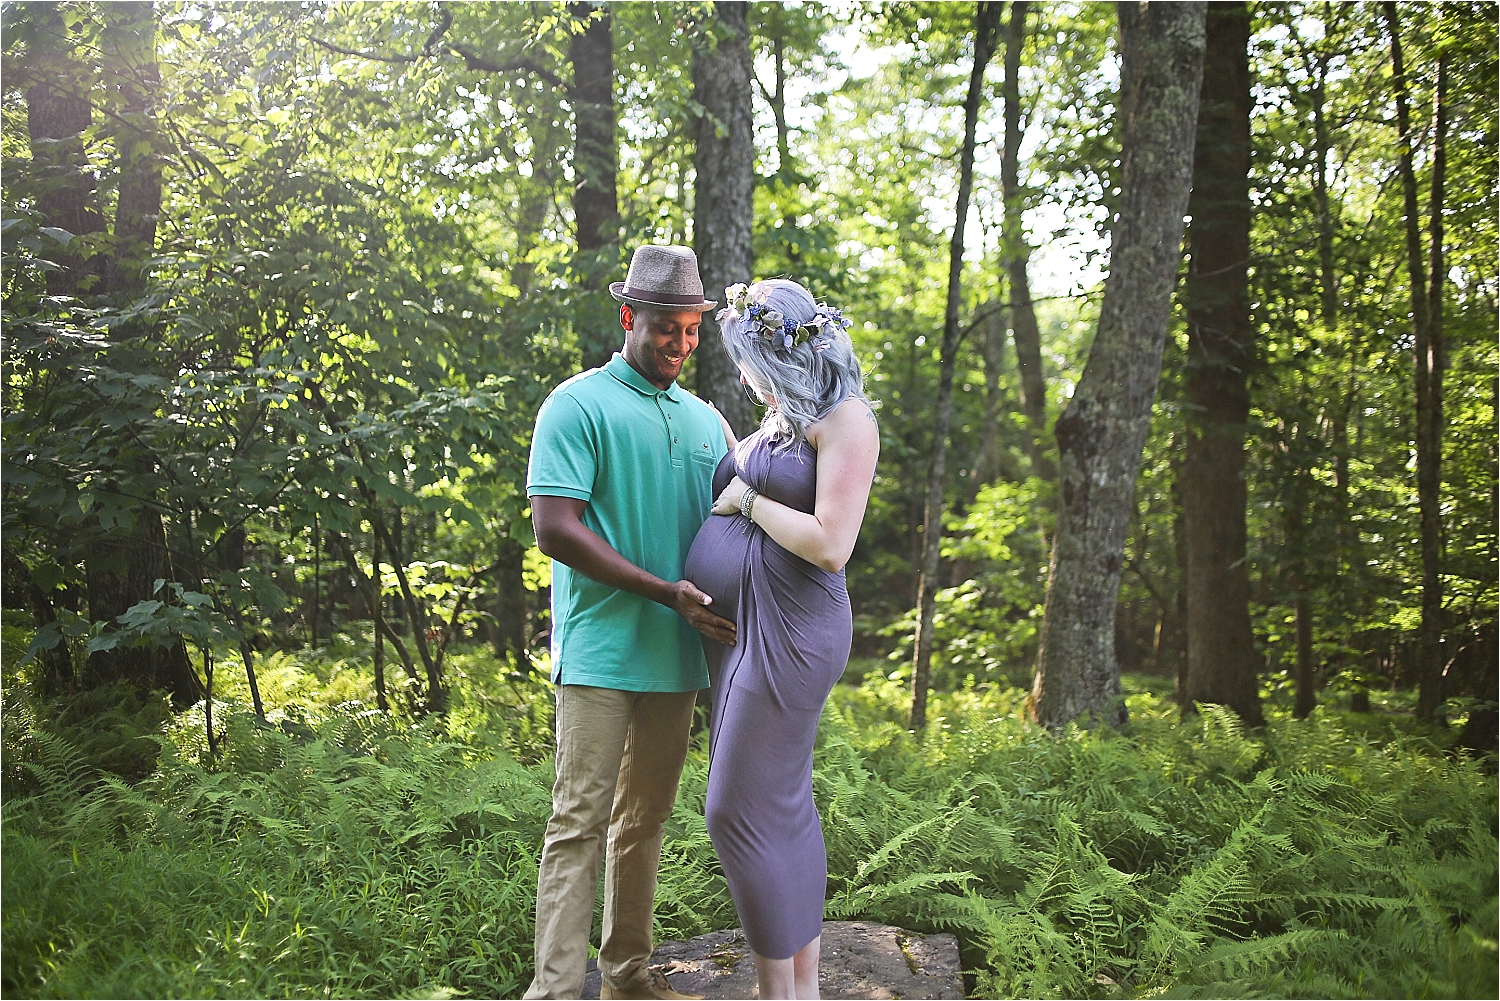 Blacksburg-Maternity-Portrait-Photographer-0010.jpg